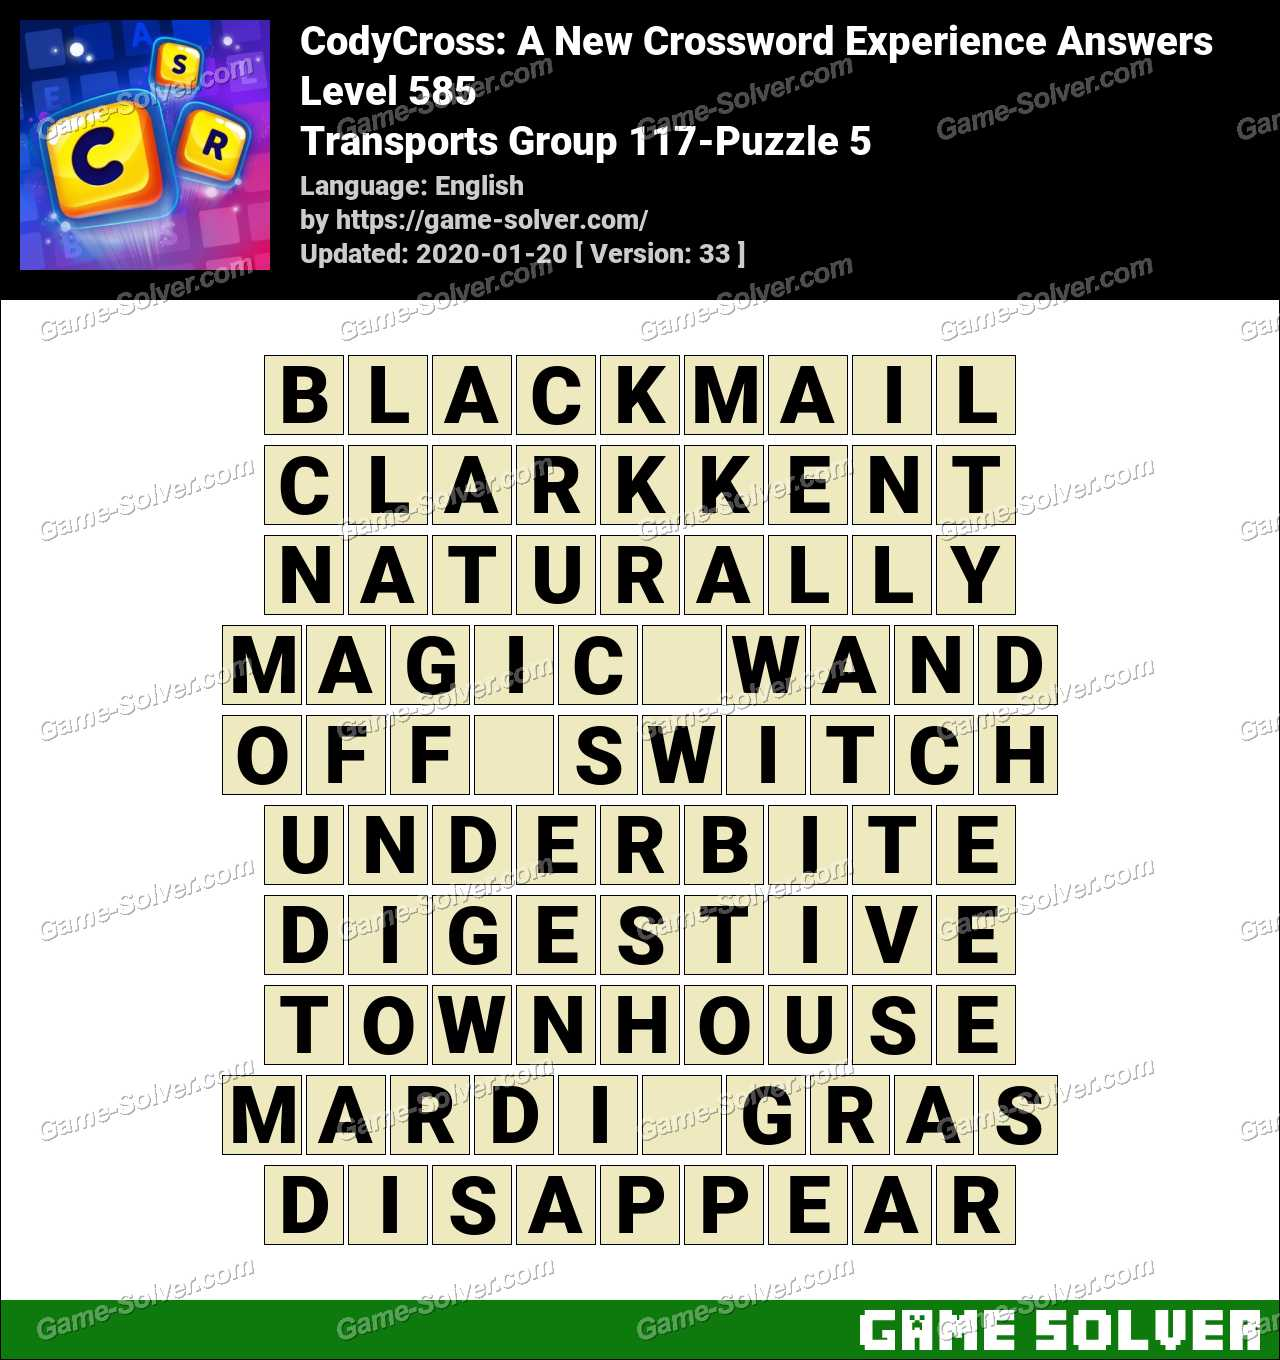 CodyCross Transports Group 117-Puzzle 5 Answers